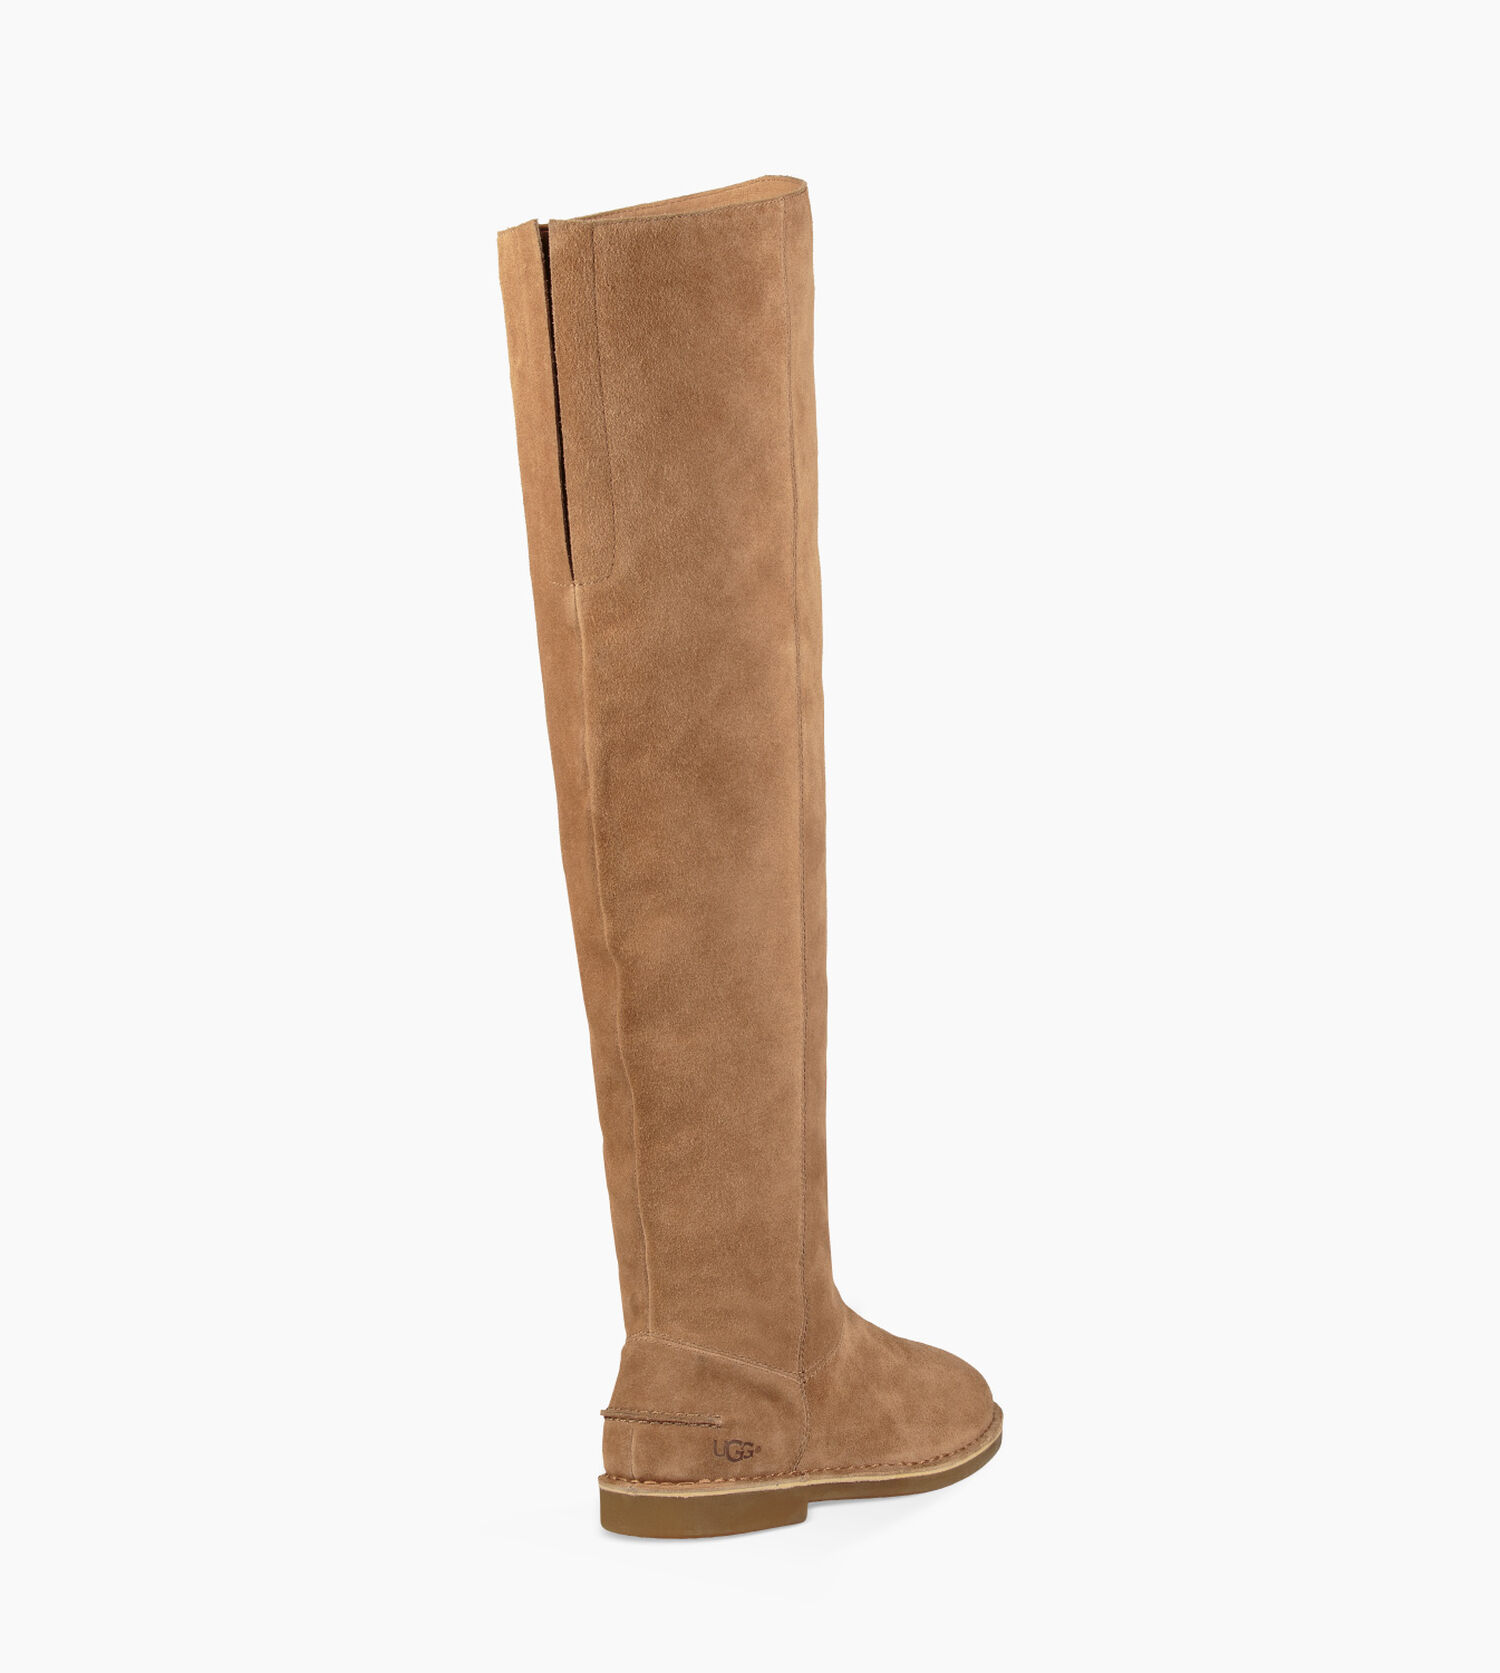 2787a3bbd04 Zoom Loma Over-the-Knee Boot - Image 4 of 6